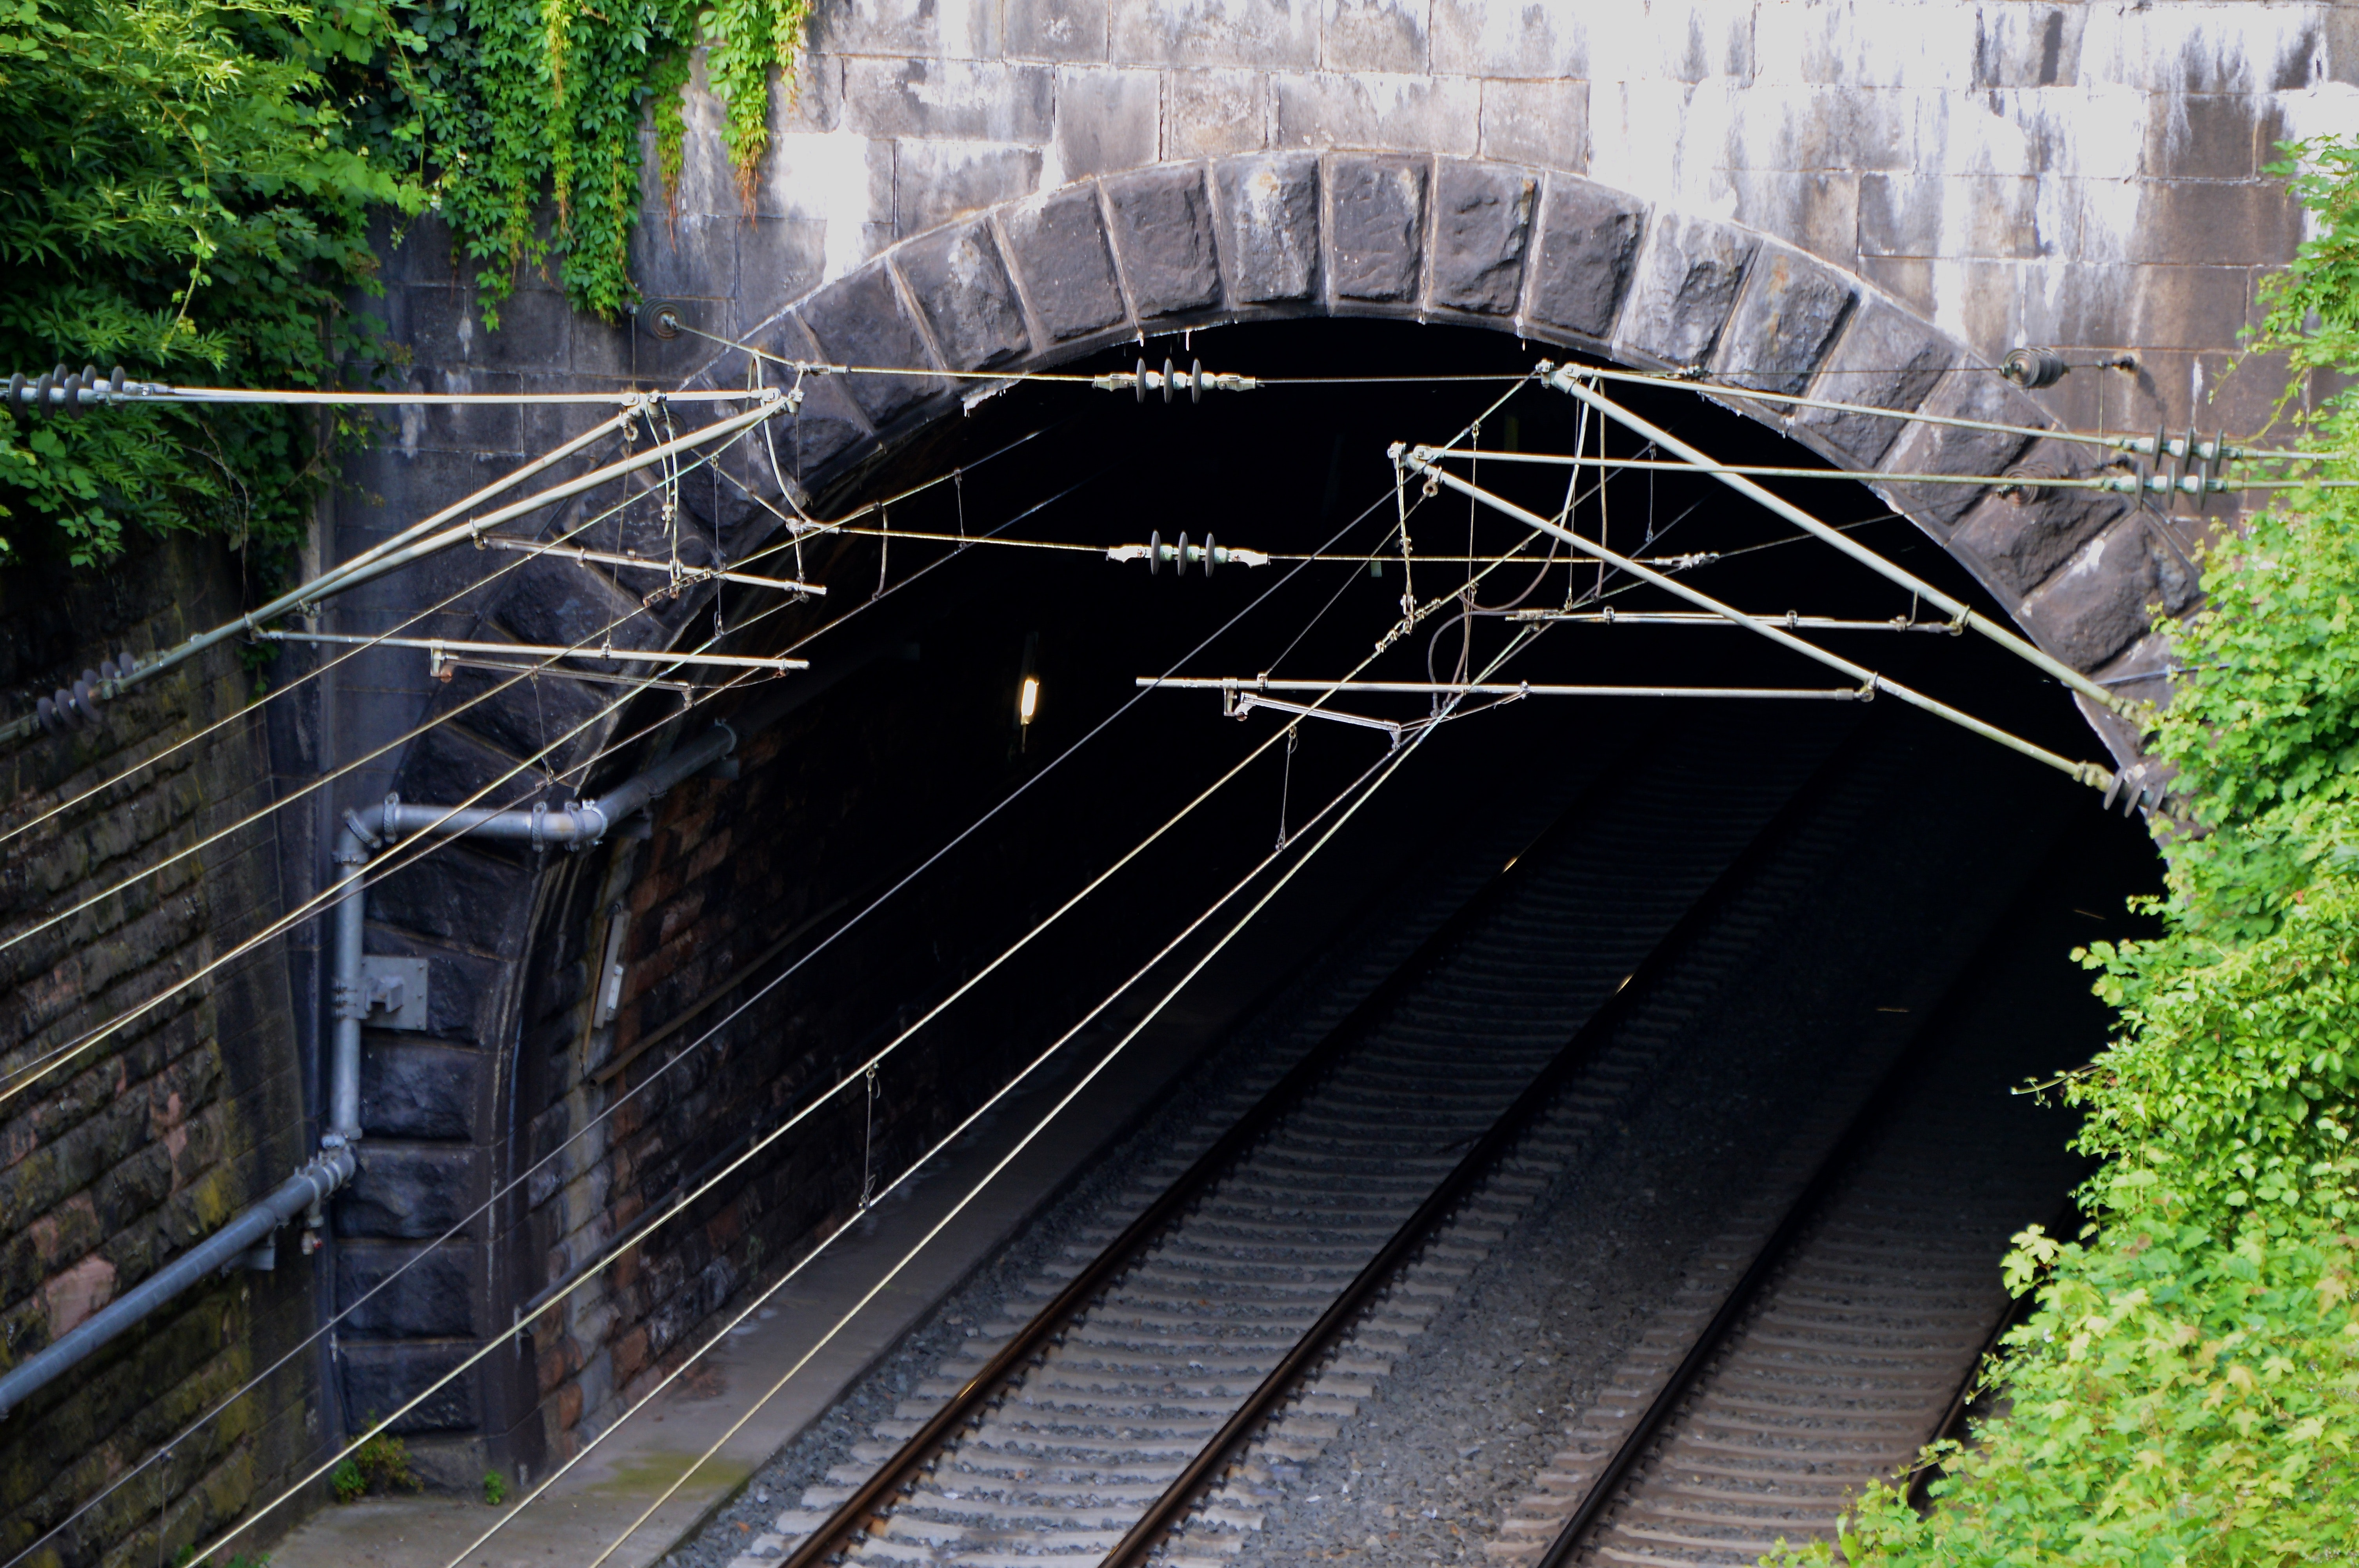 Low Angle View of Built Structure, Architecture, Railways, Tunnel, Travel, HQ Photo